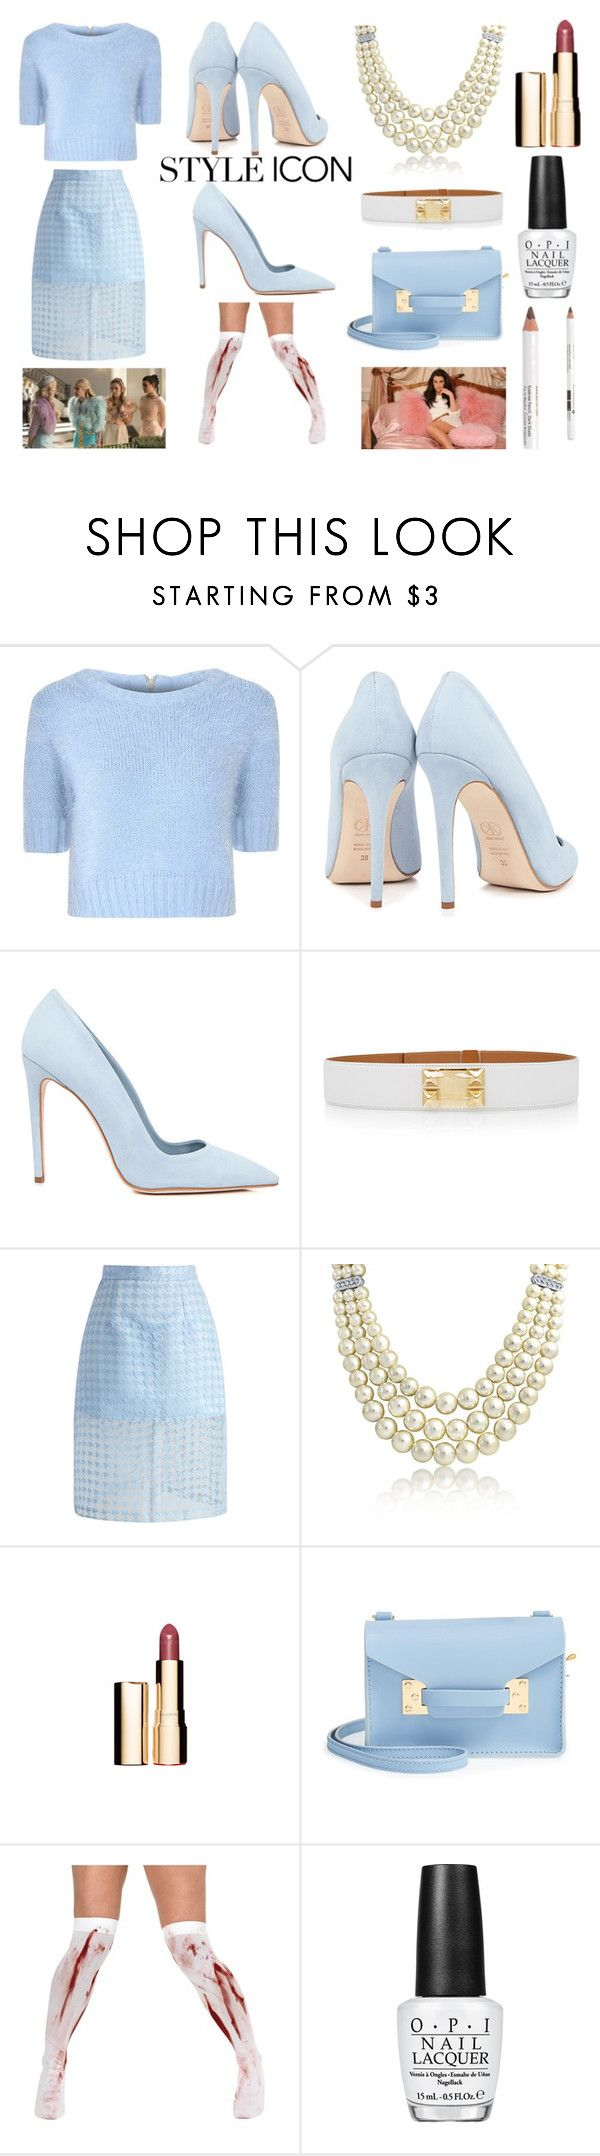 """""""Style Icon: Chanel Number 6 from Scream Queens"""" by aradiamegiddy ❤ liked on Polyvore featuring Glamorous, Dee Keller, Hermès, Chicwish, Bling Jewelry, Sophie Hulme, OPI and Korres"""